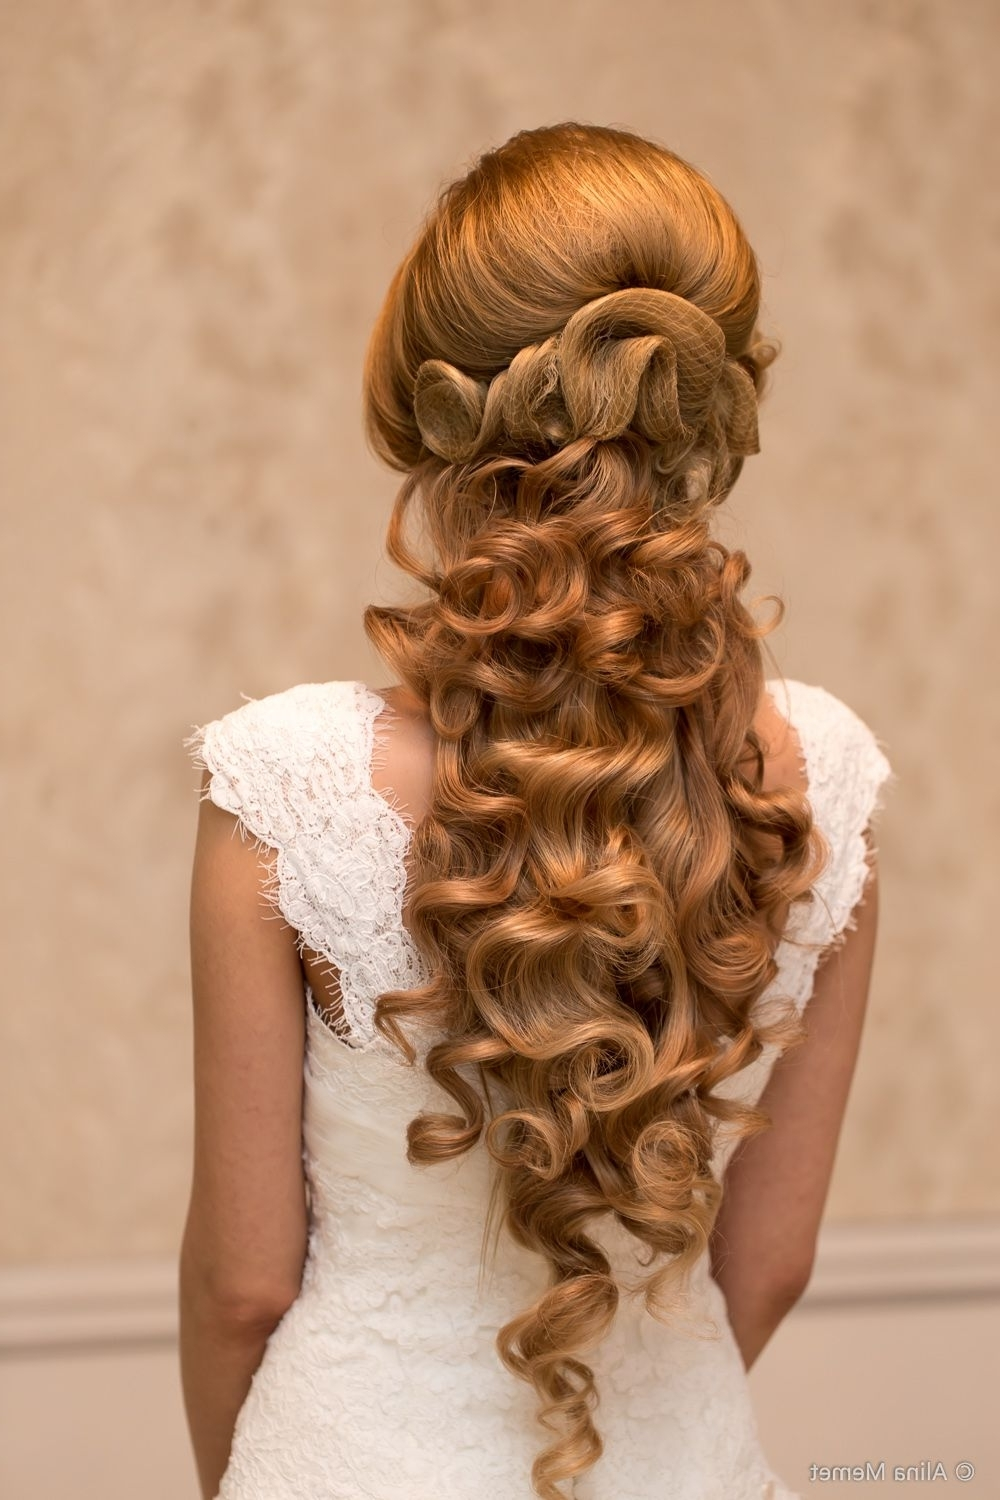 Best And Newest Wedding Hairstyles For Older Ladies With Long Hair Within 10 Classic Hairstyles Tutorials That Are Always In Style (View 4 of 15)